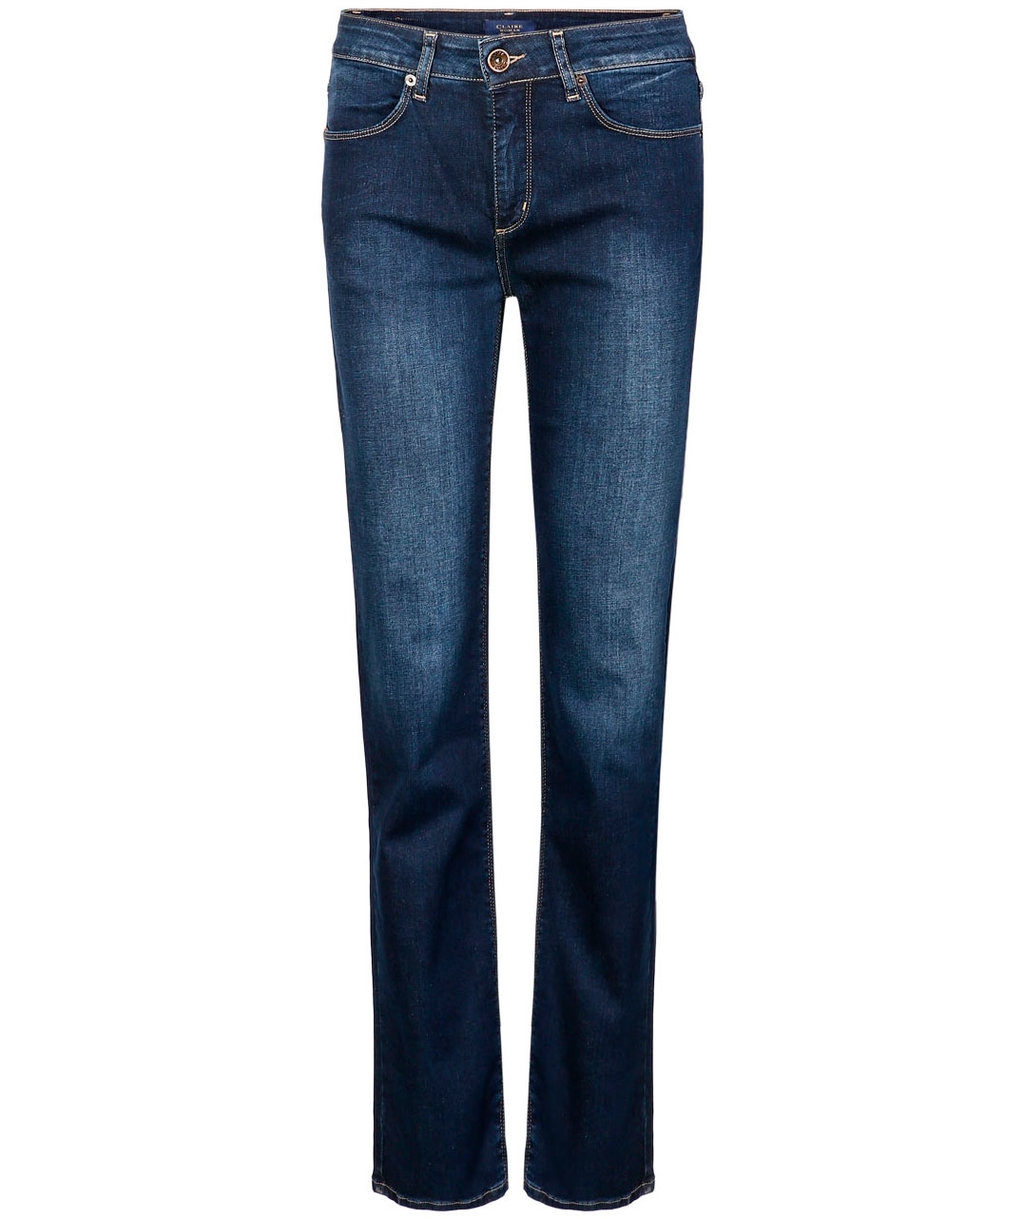 Claire Janice dame jeans, Lang modell, Denim